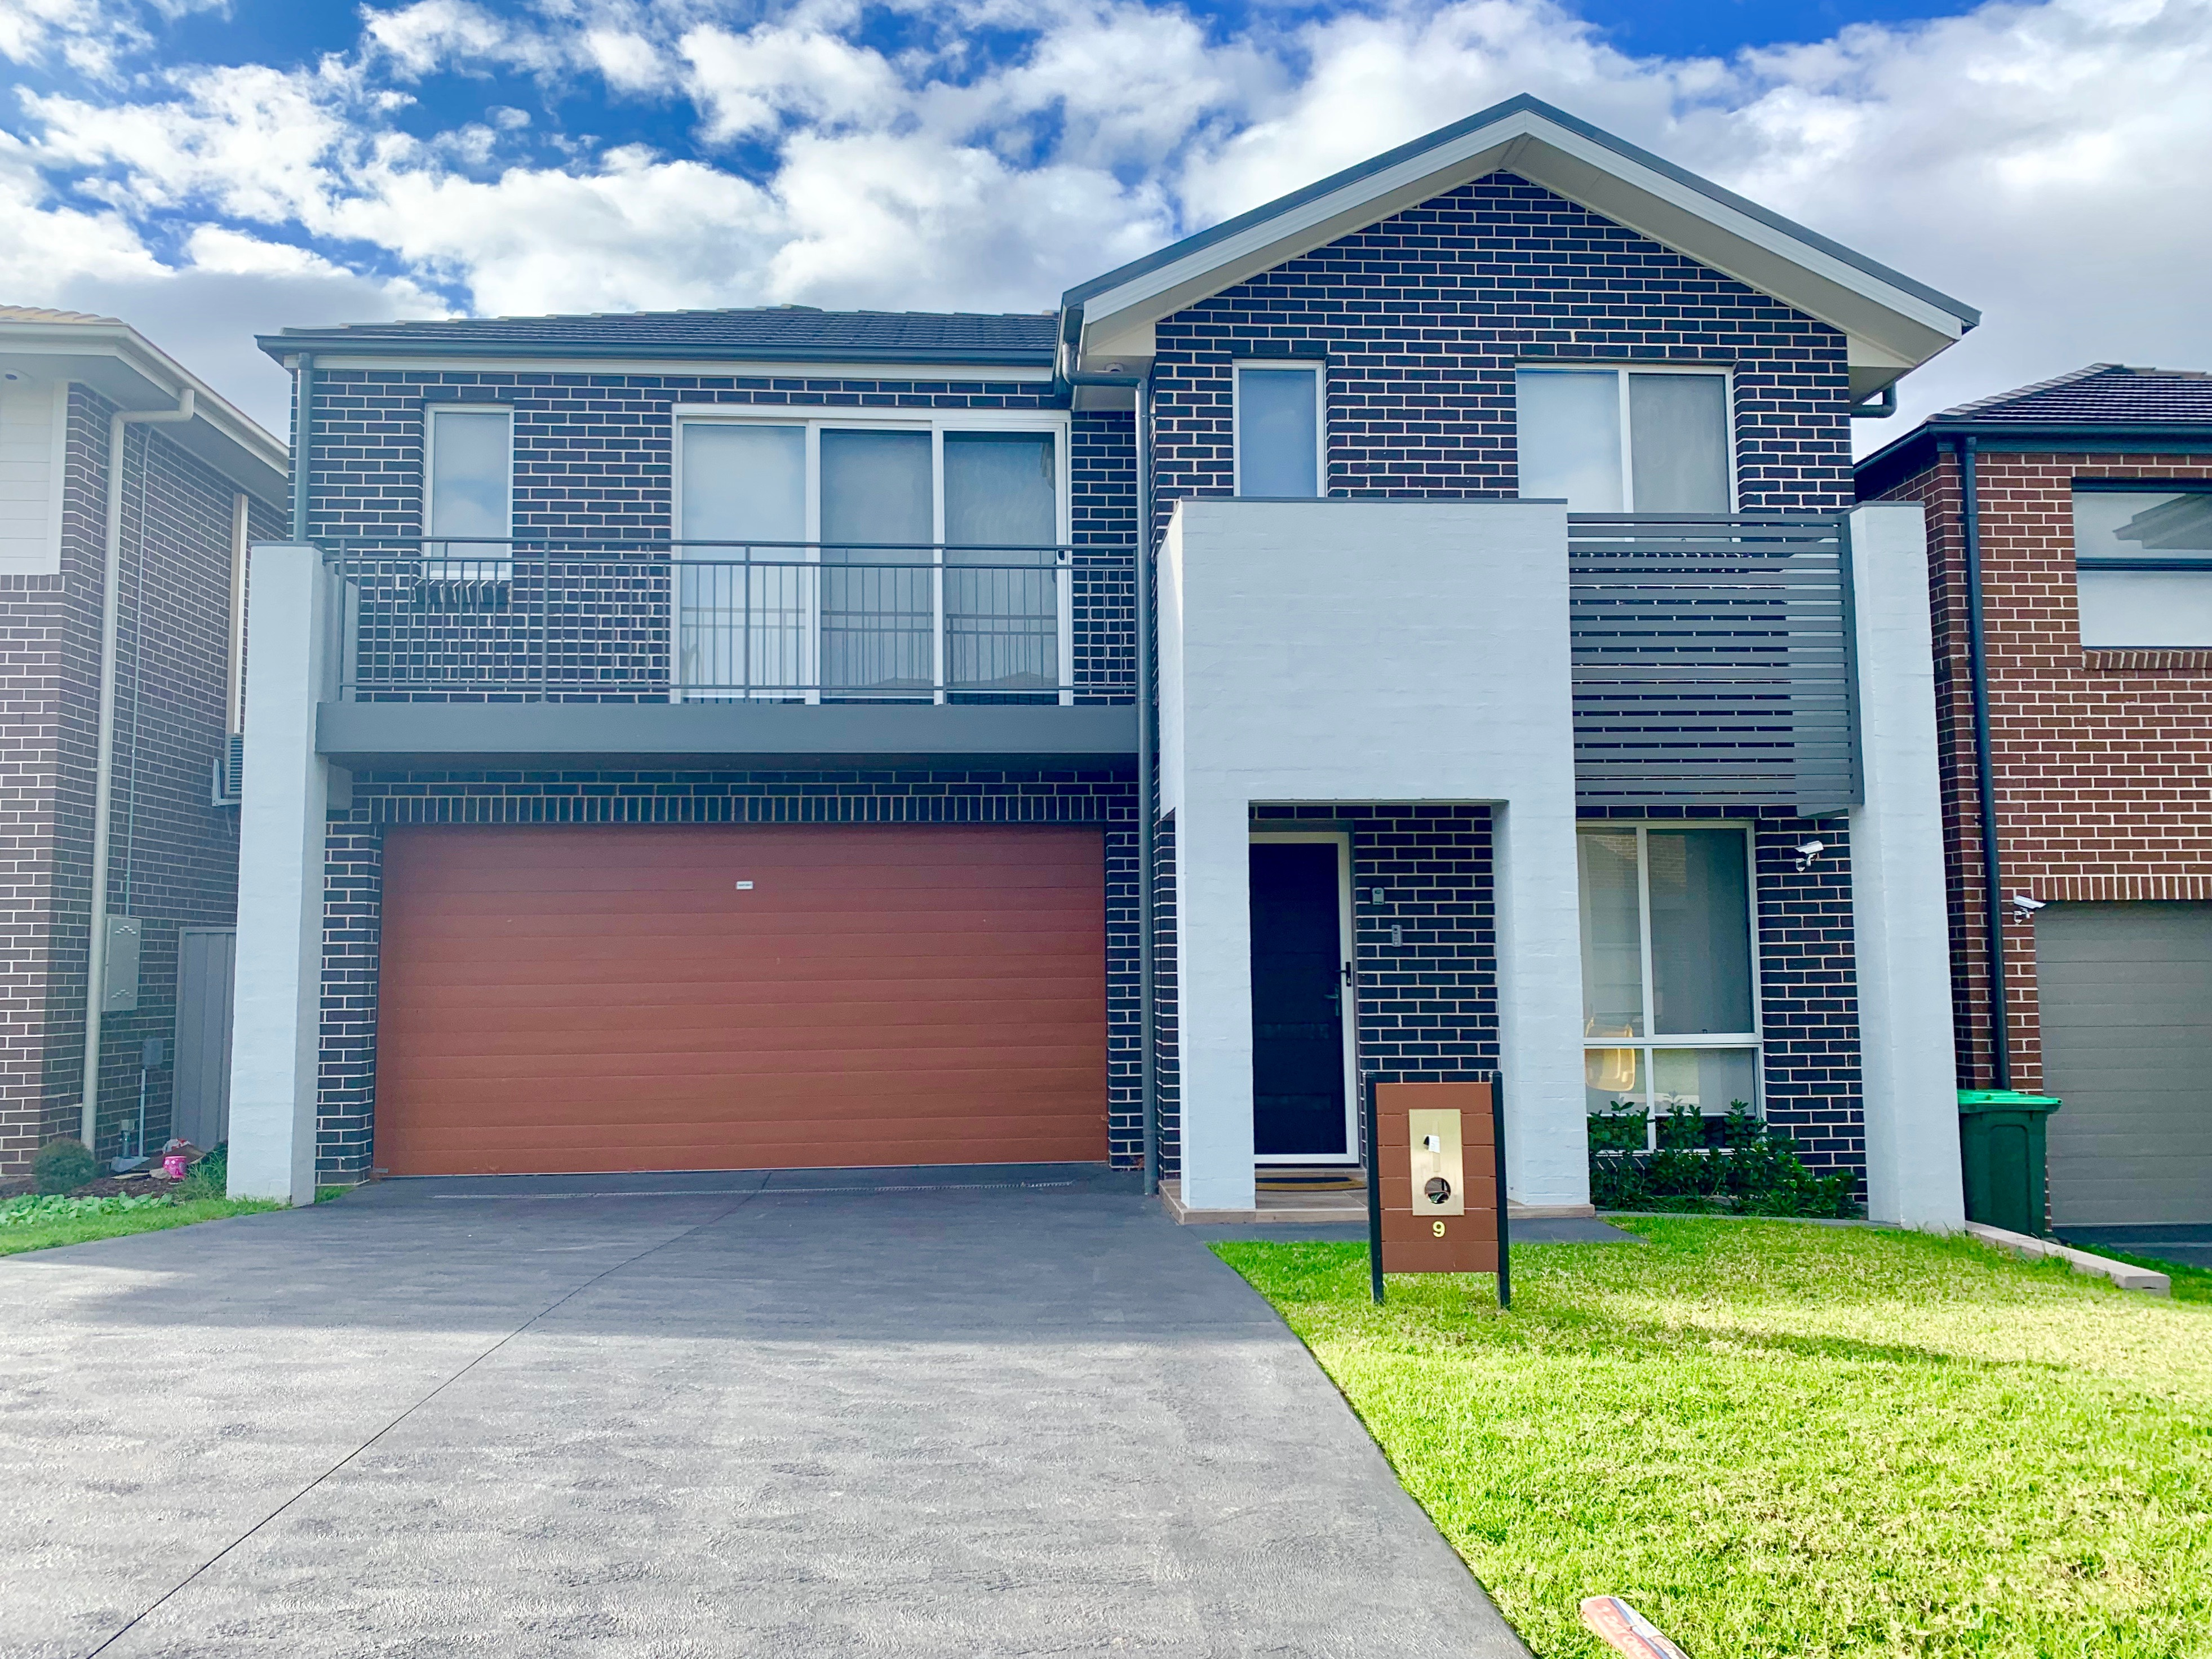 9 Albermarle Road Glenfield - Front Exterior